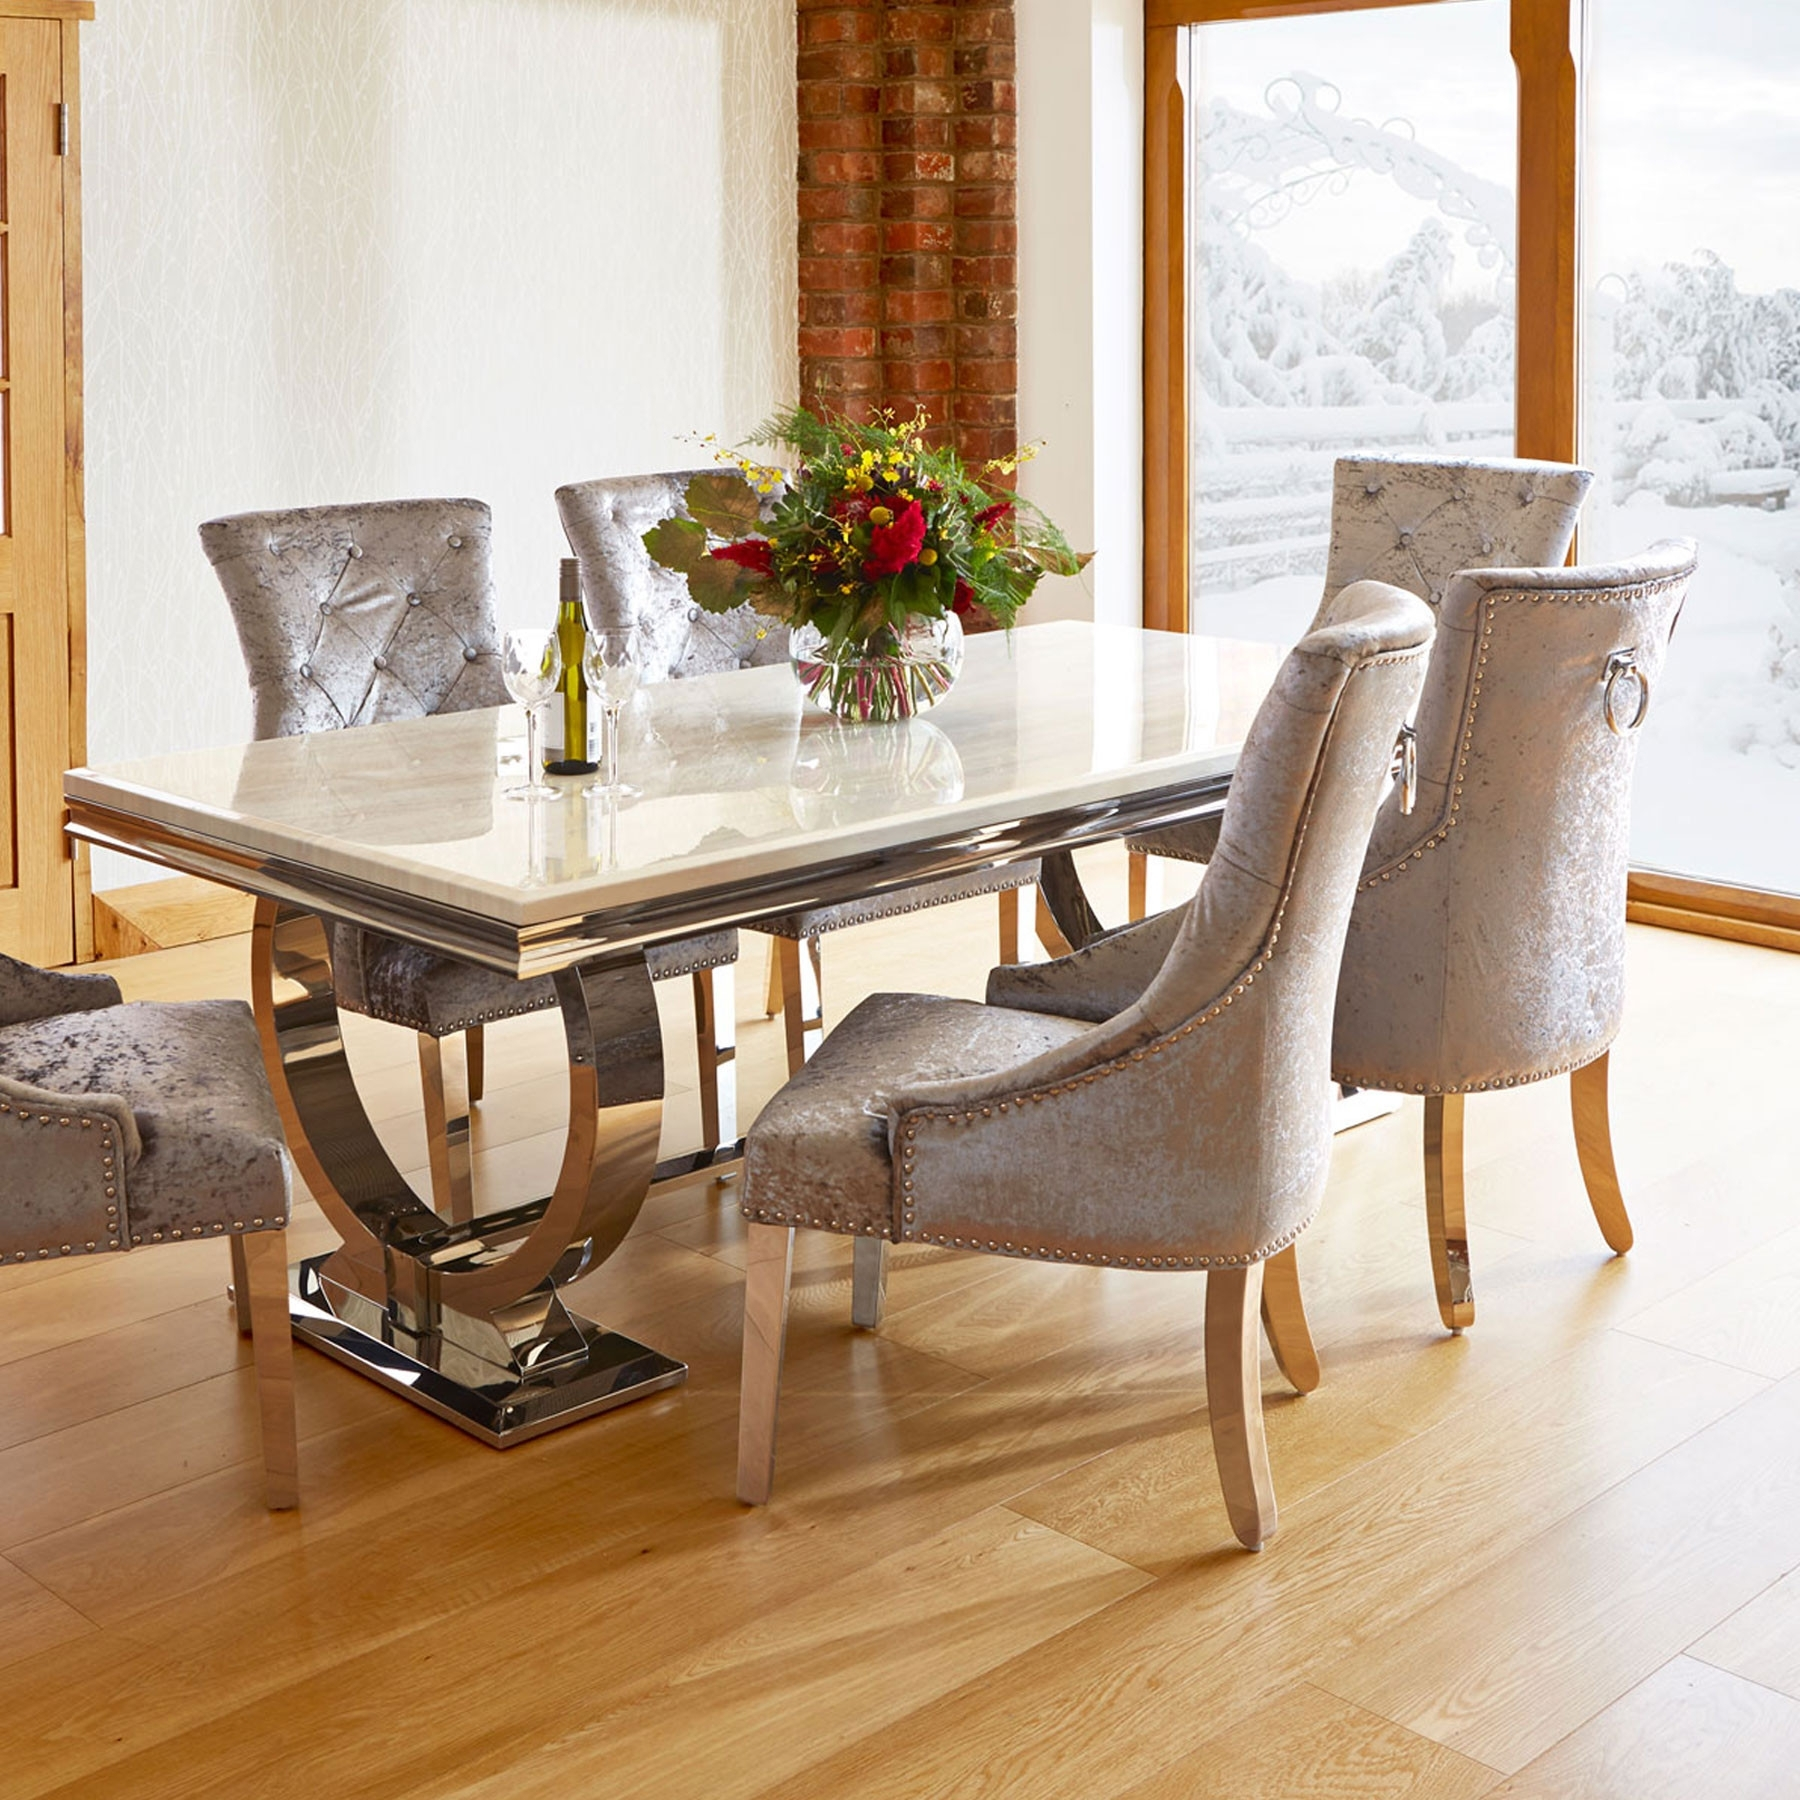 Chrome Dining Tables And Chairs With Widely Used Renata Marble And Chrome Dining Table & 6 Silver Louis Chairs (View 1 of 25)